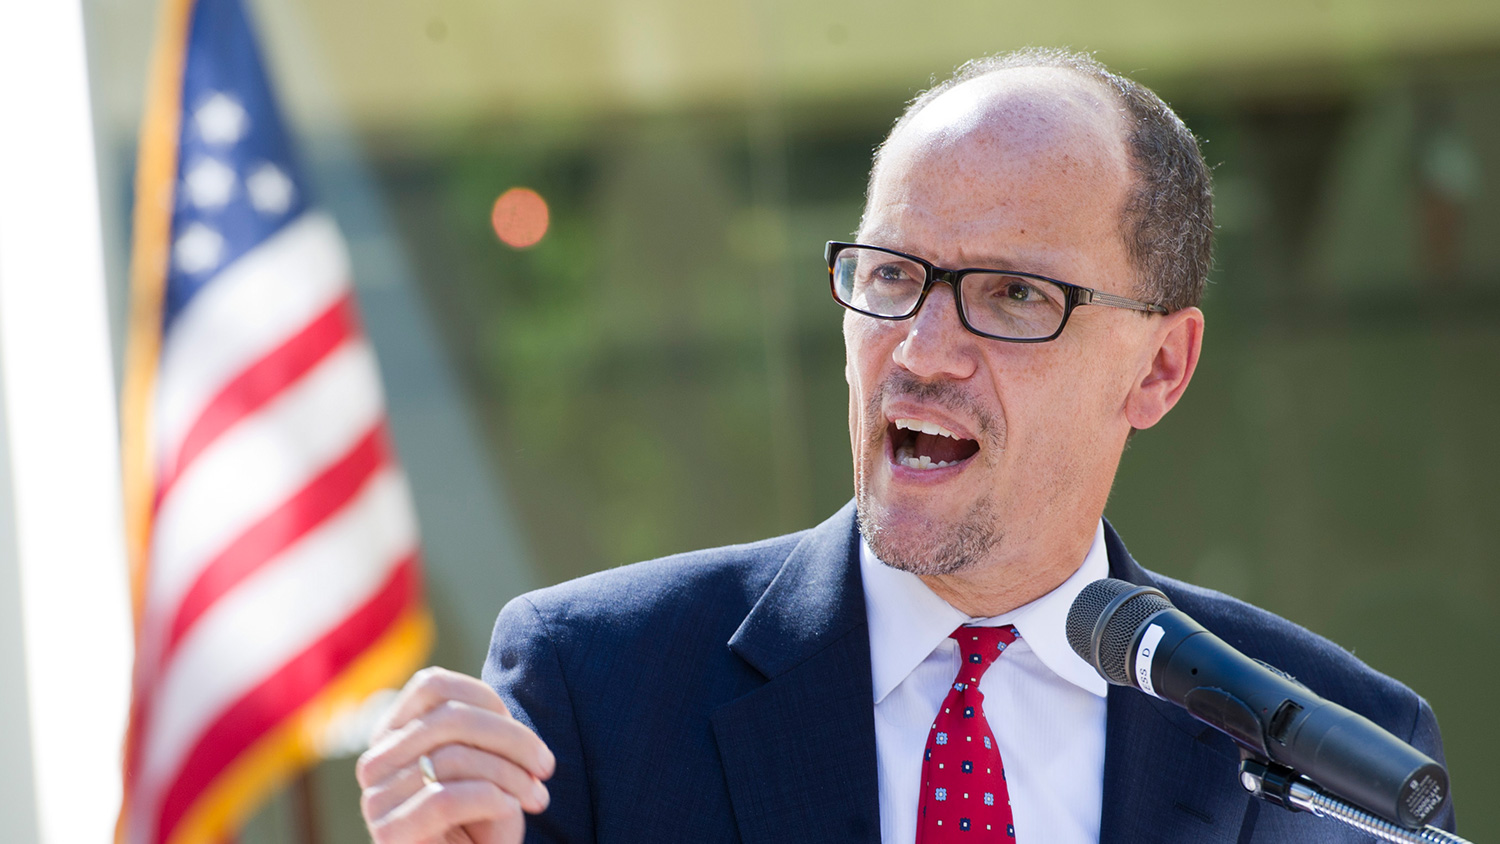 Thomas Perez - Party Chair of the Democratic National Committee